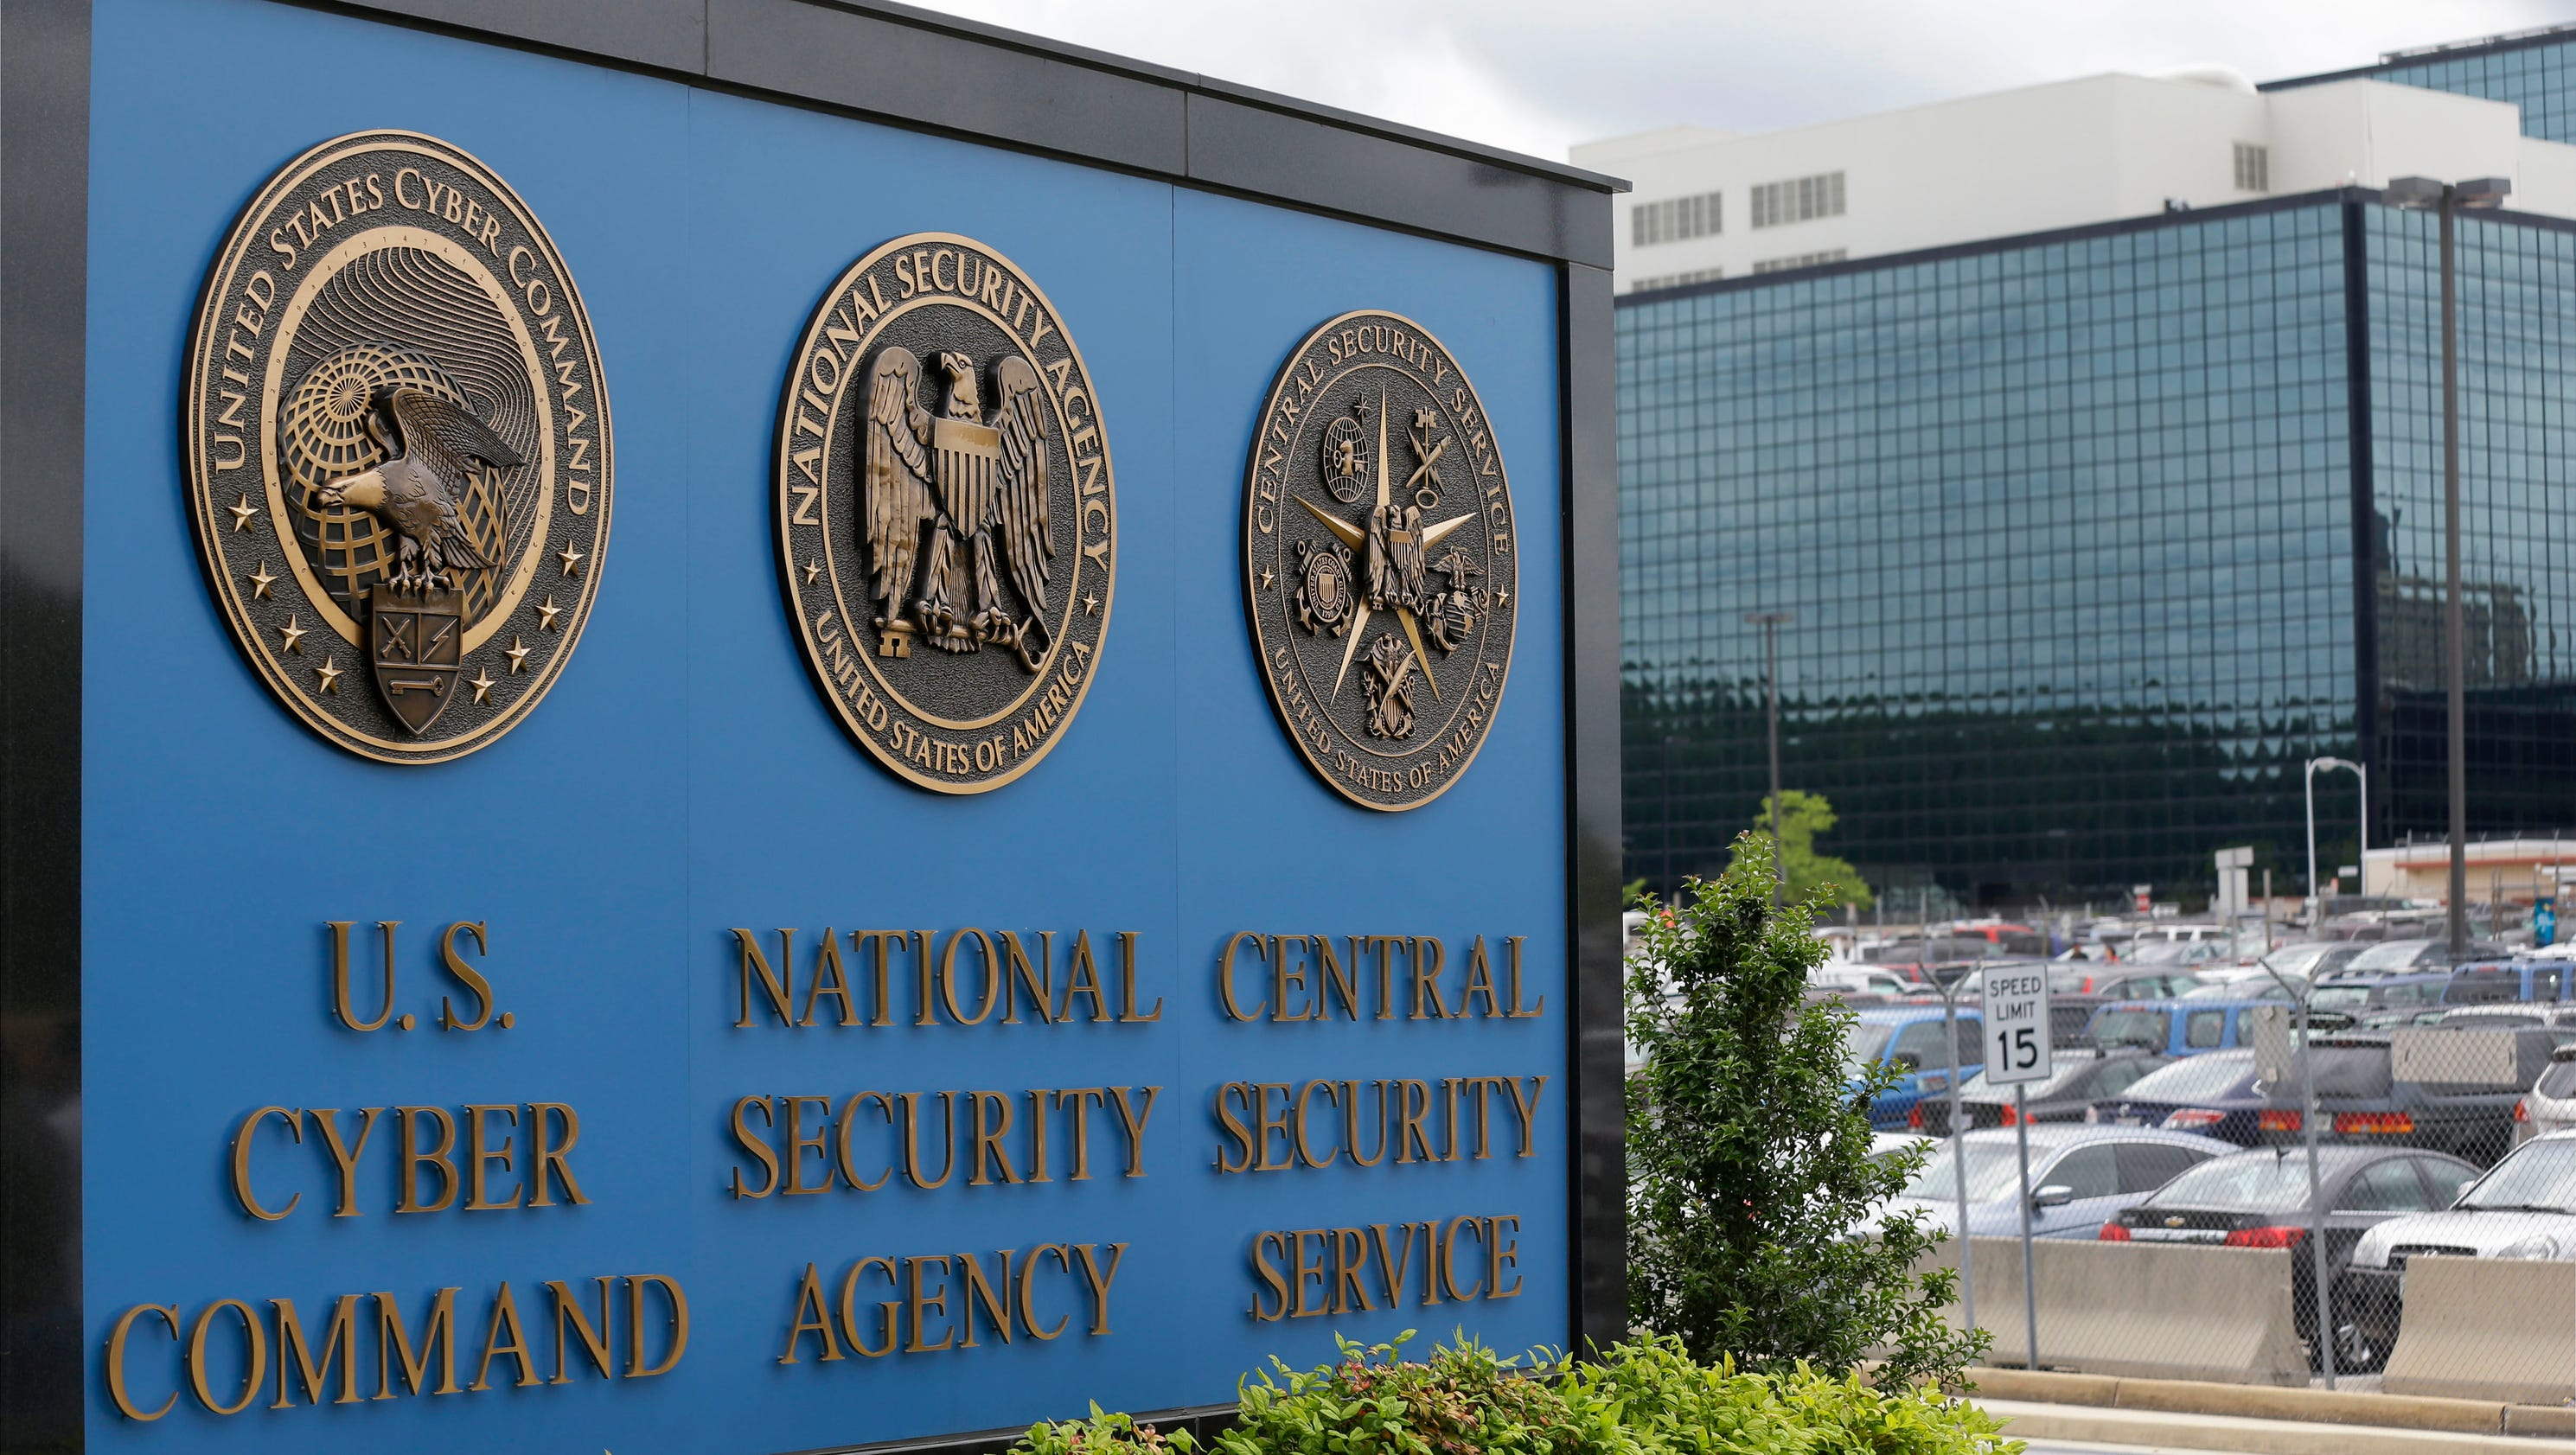 nsa surveillance program Despite the intelligence community's attempts to blame nsa whistleblower edward snowden for the tragic attacks in paris on friday, the nsa's mass surveillance programs do not have a track record — before or after snowden — of identifying or thwarting actual large-scale terrorist plots cia.